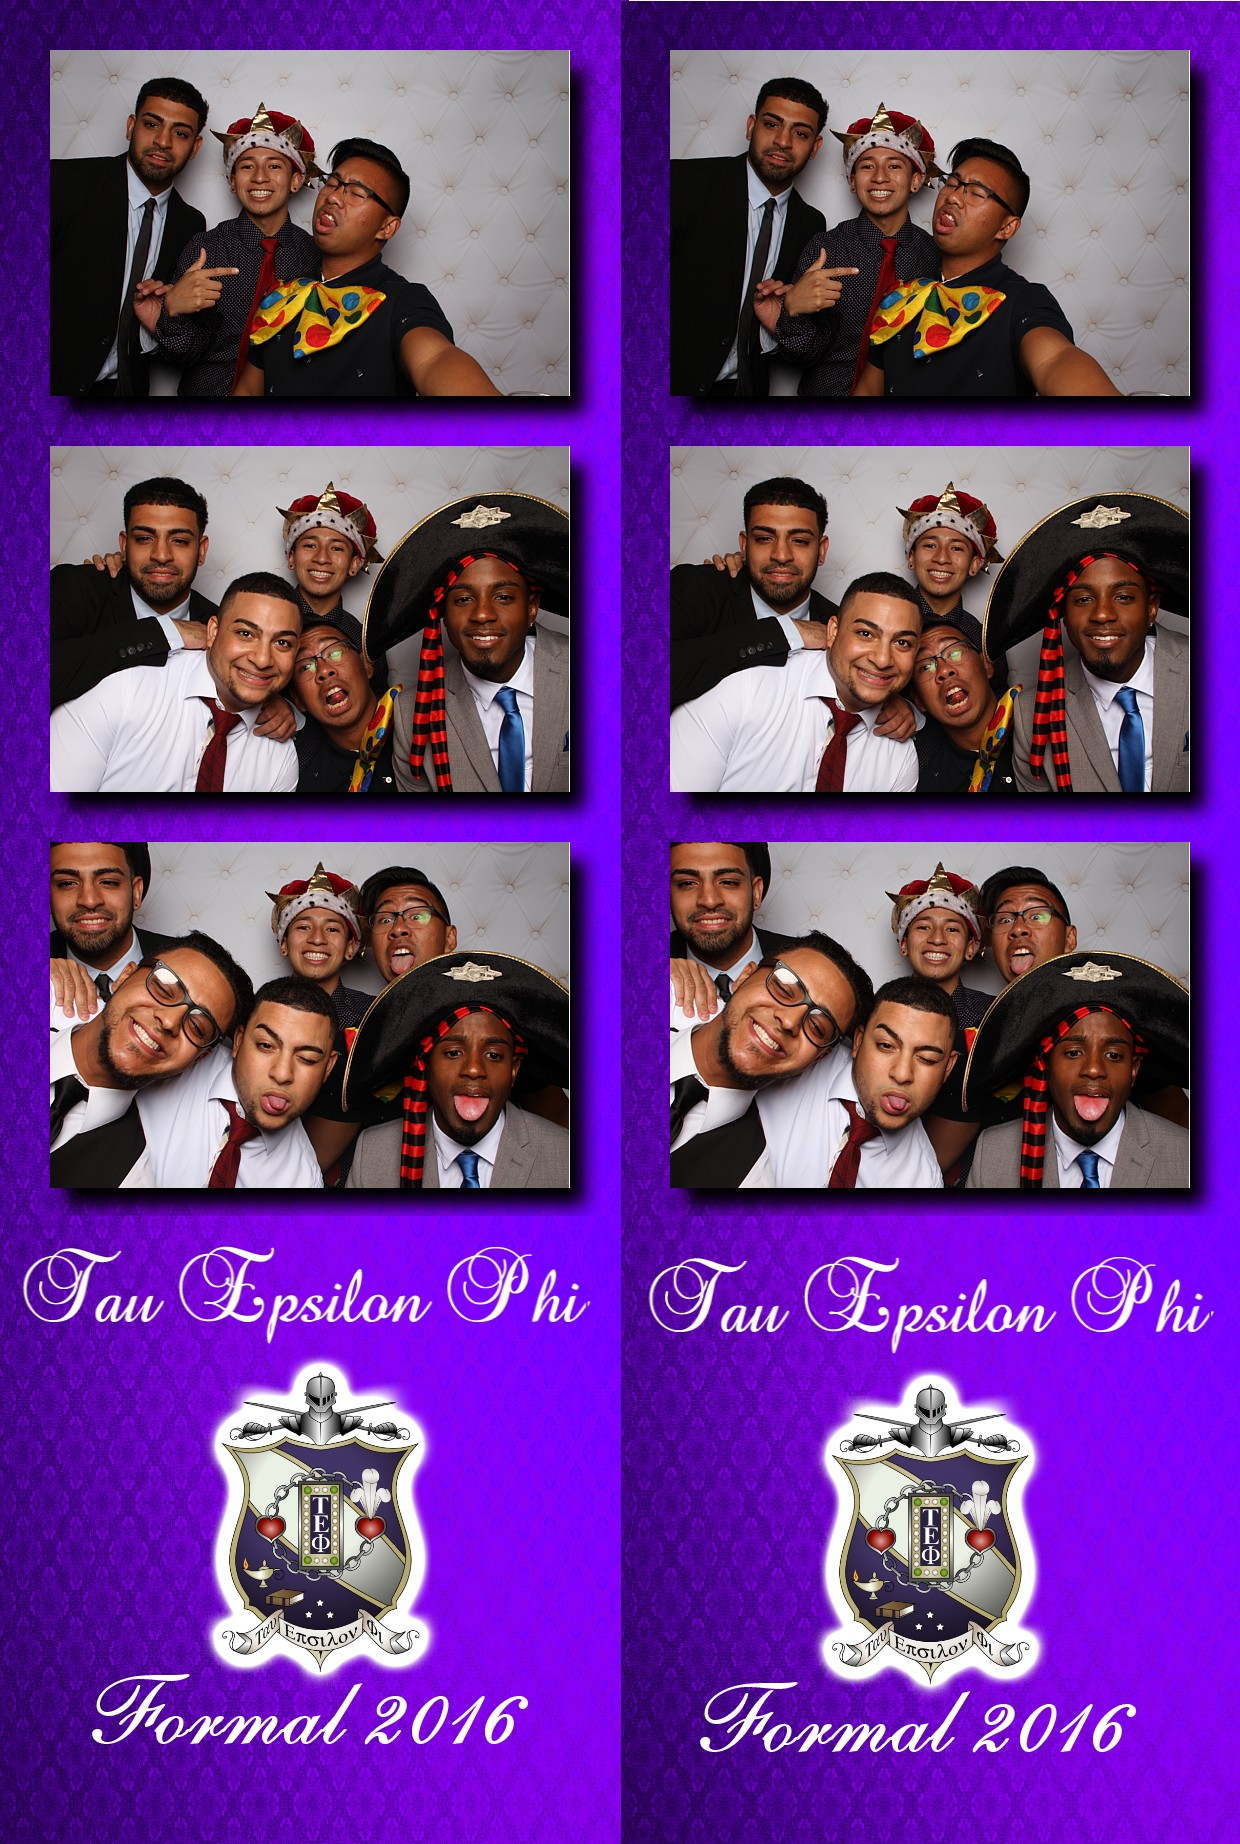 TAU EPSILON PHI FORMAL 2016